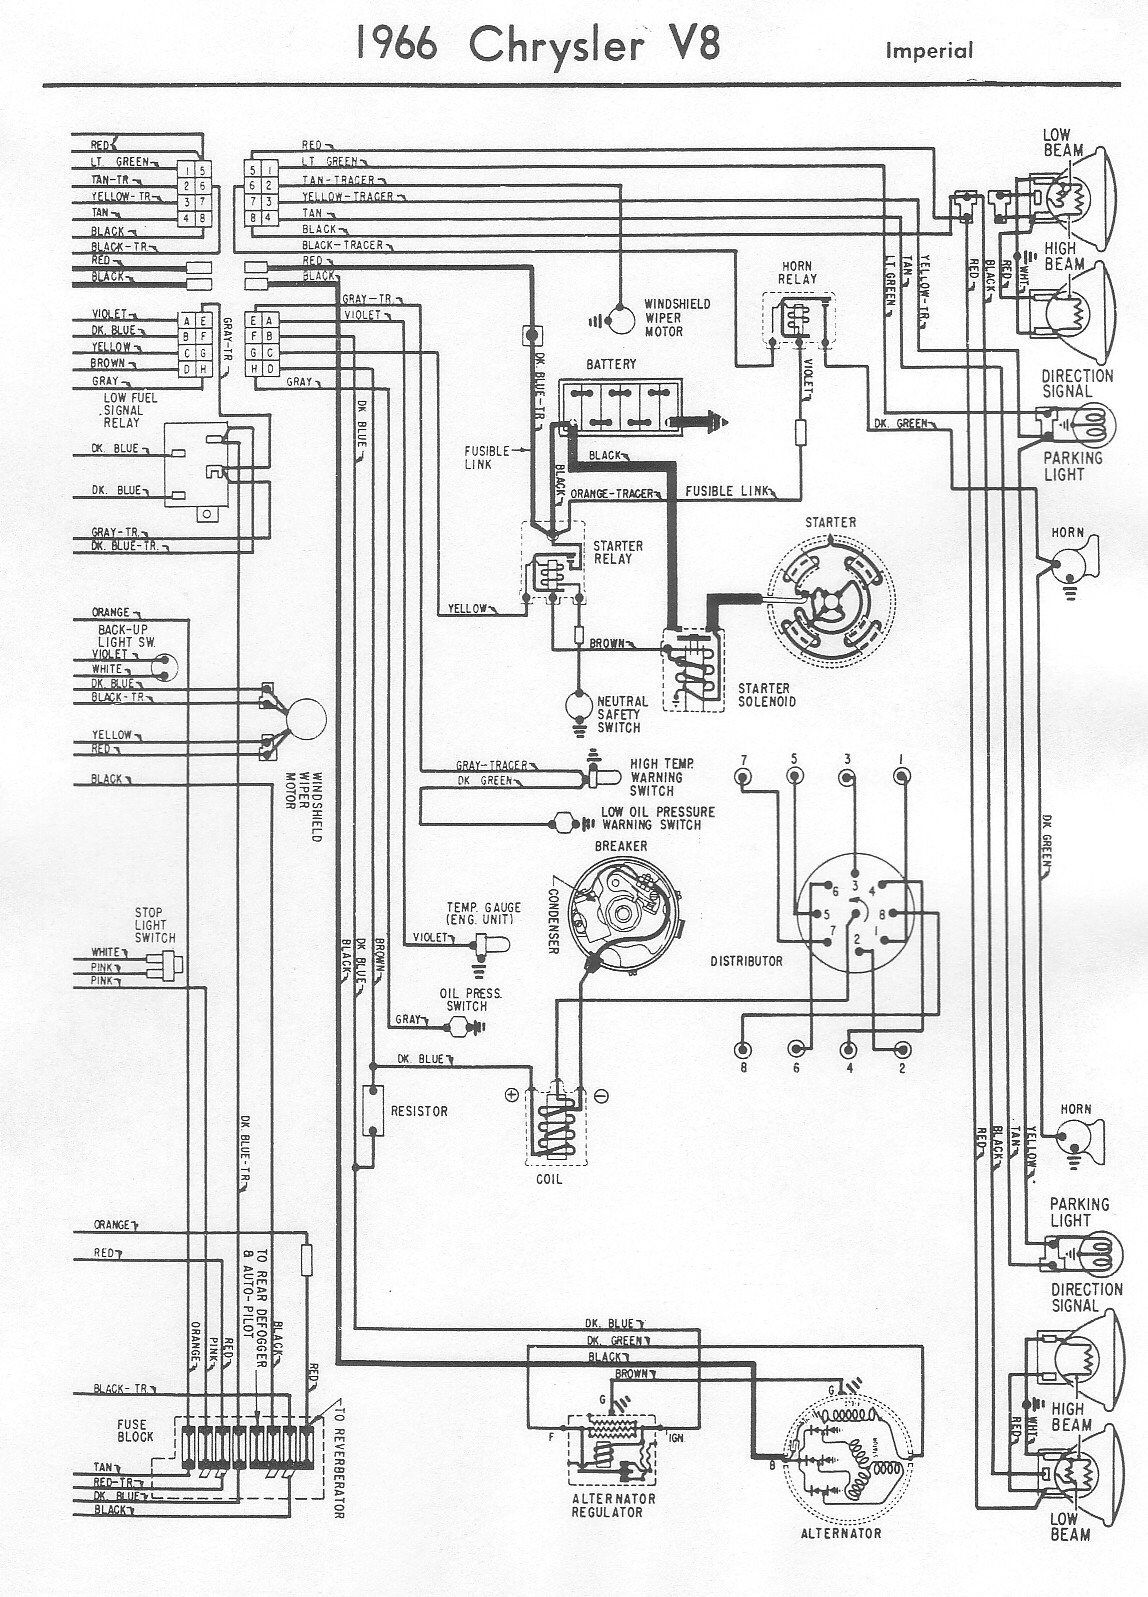 [FPWZ_2684]  61A 72 Road Runner Wiring Diagram | Wiring Library | Imperial Wiring Diagrams |  | Wiring Library